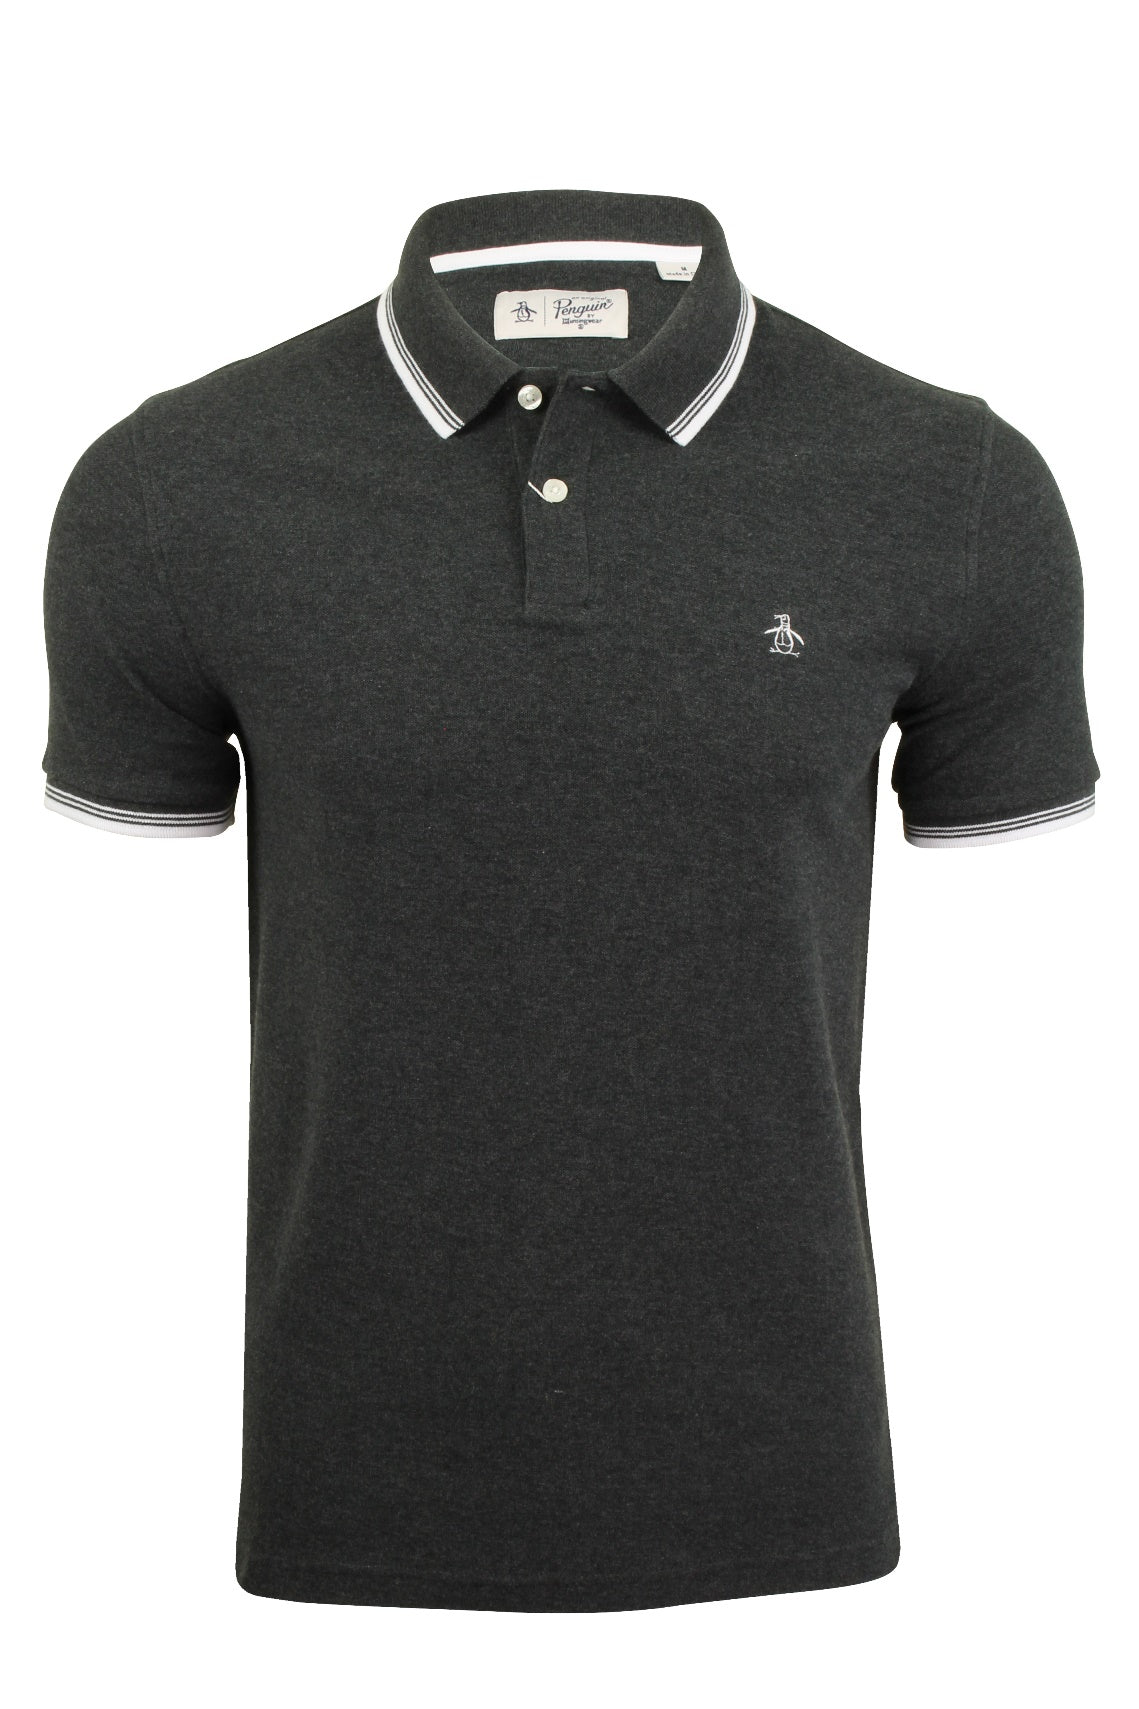 Mens Tipped Pique Polo T-Shirt by Original Penguin Short Sleeved-2